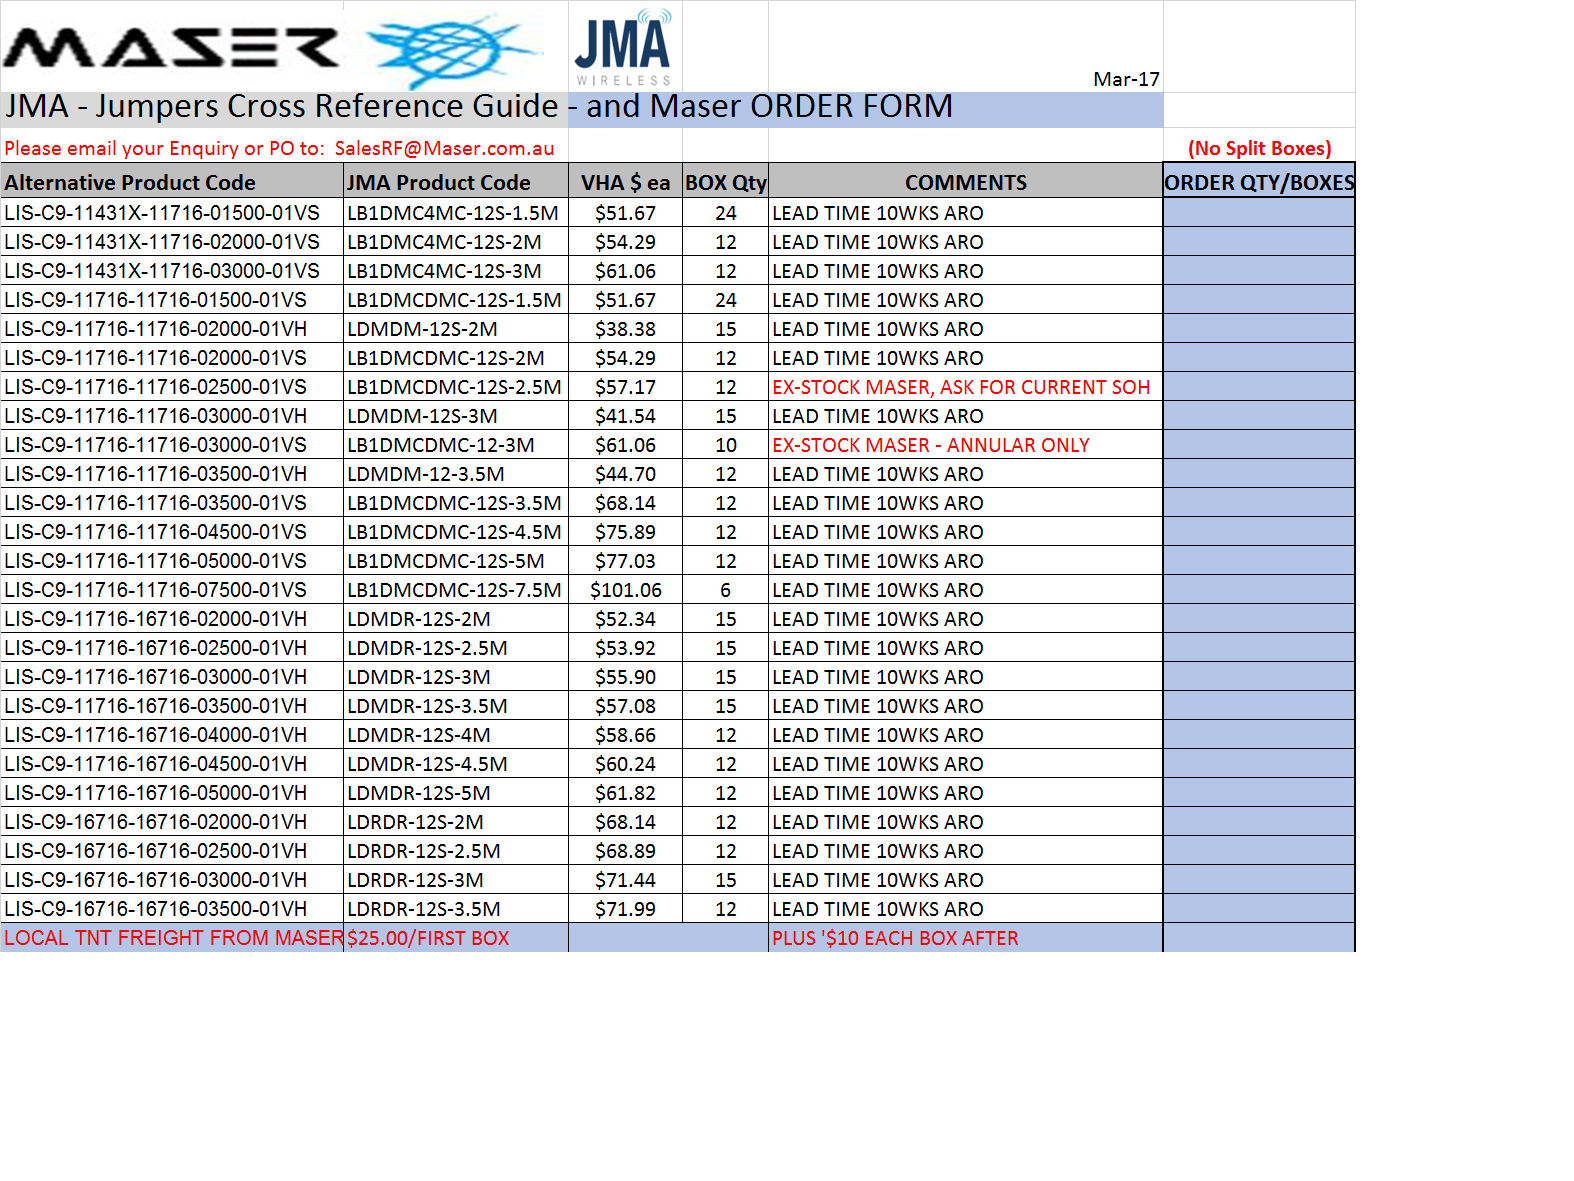 Order your JMA Jumpers from Maser today!